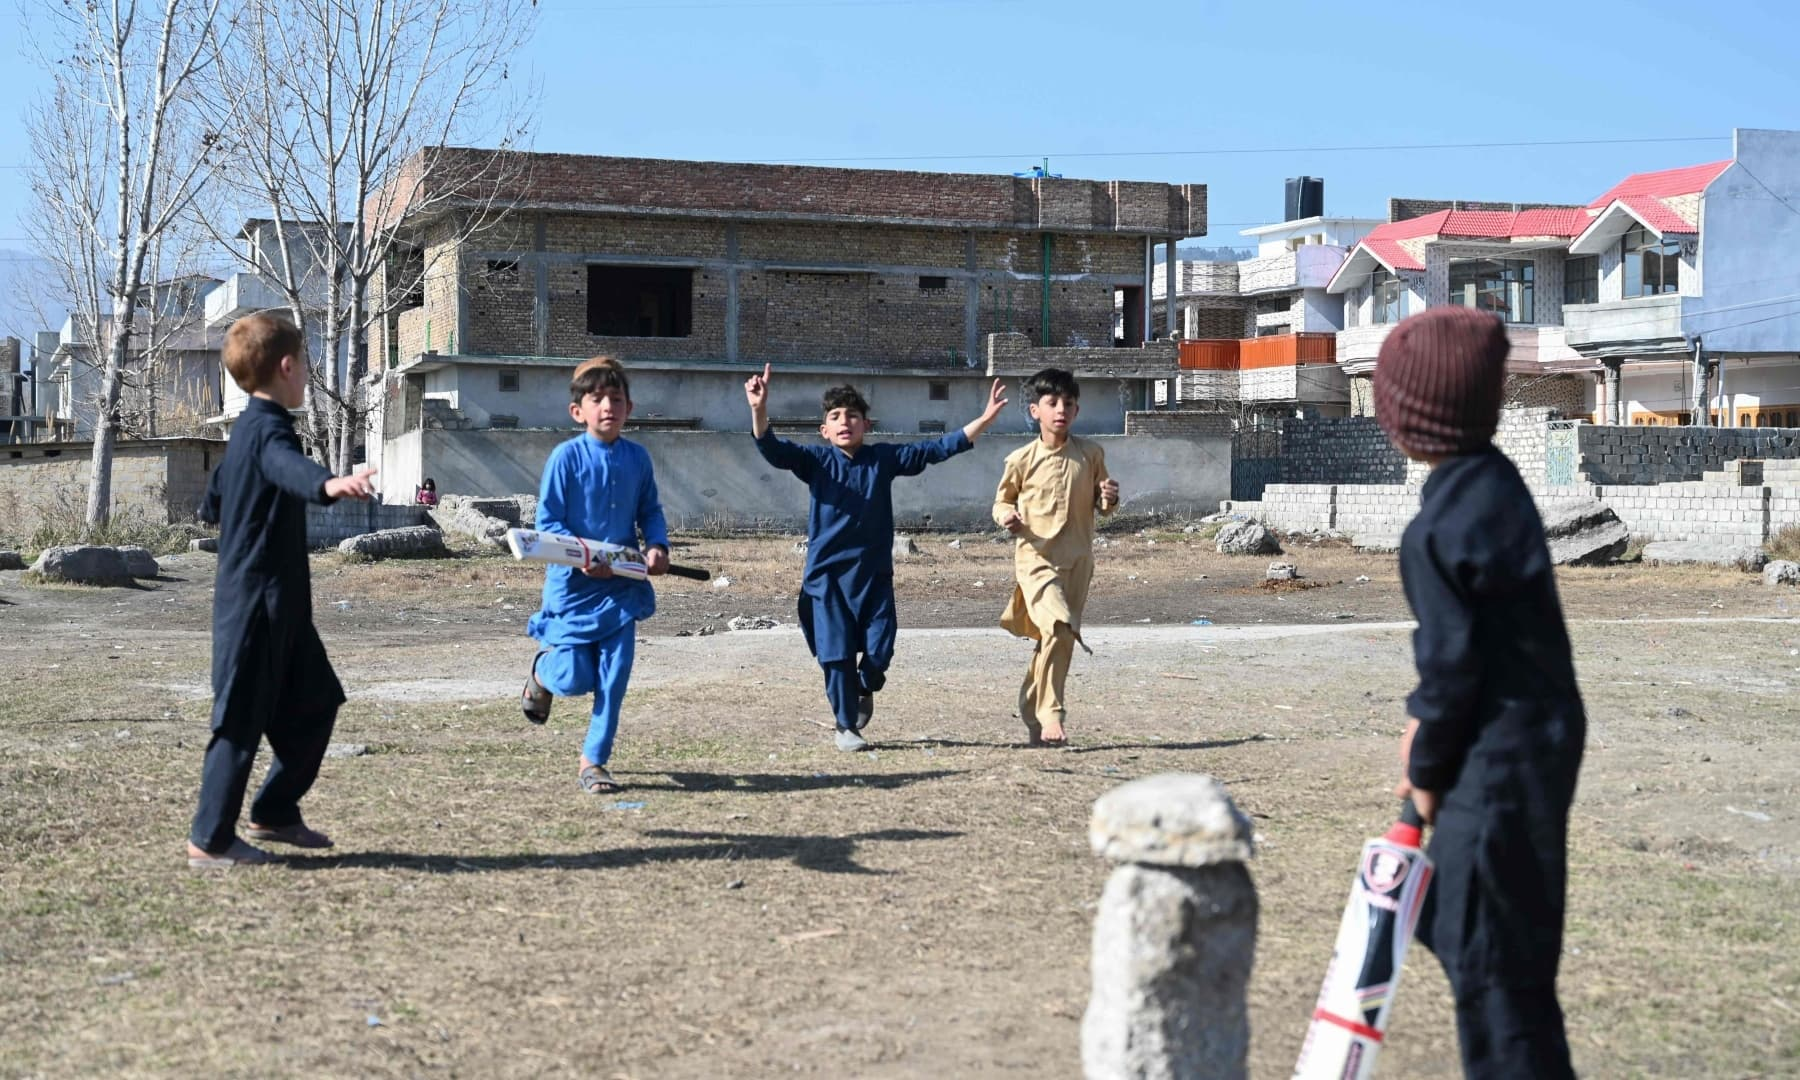 Children play cricket at the site of the demolished compound of Osama bin Laden in northern Abbottabad, in this picture taken on February 11, 2021. — AFP